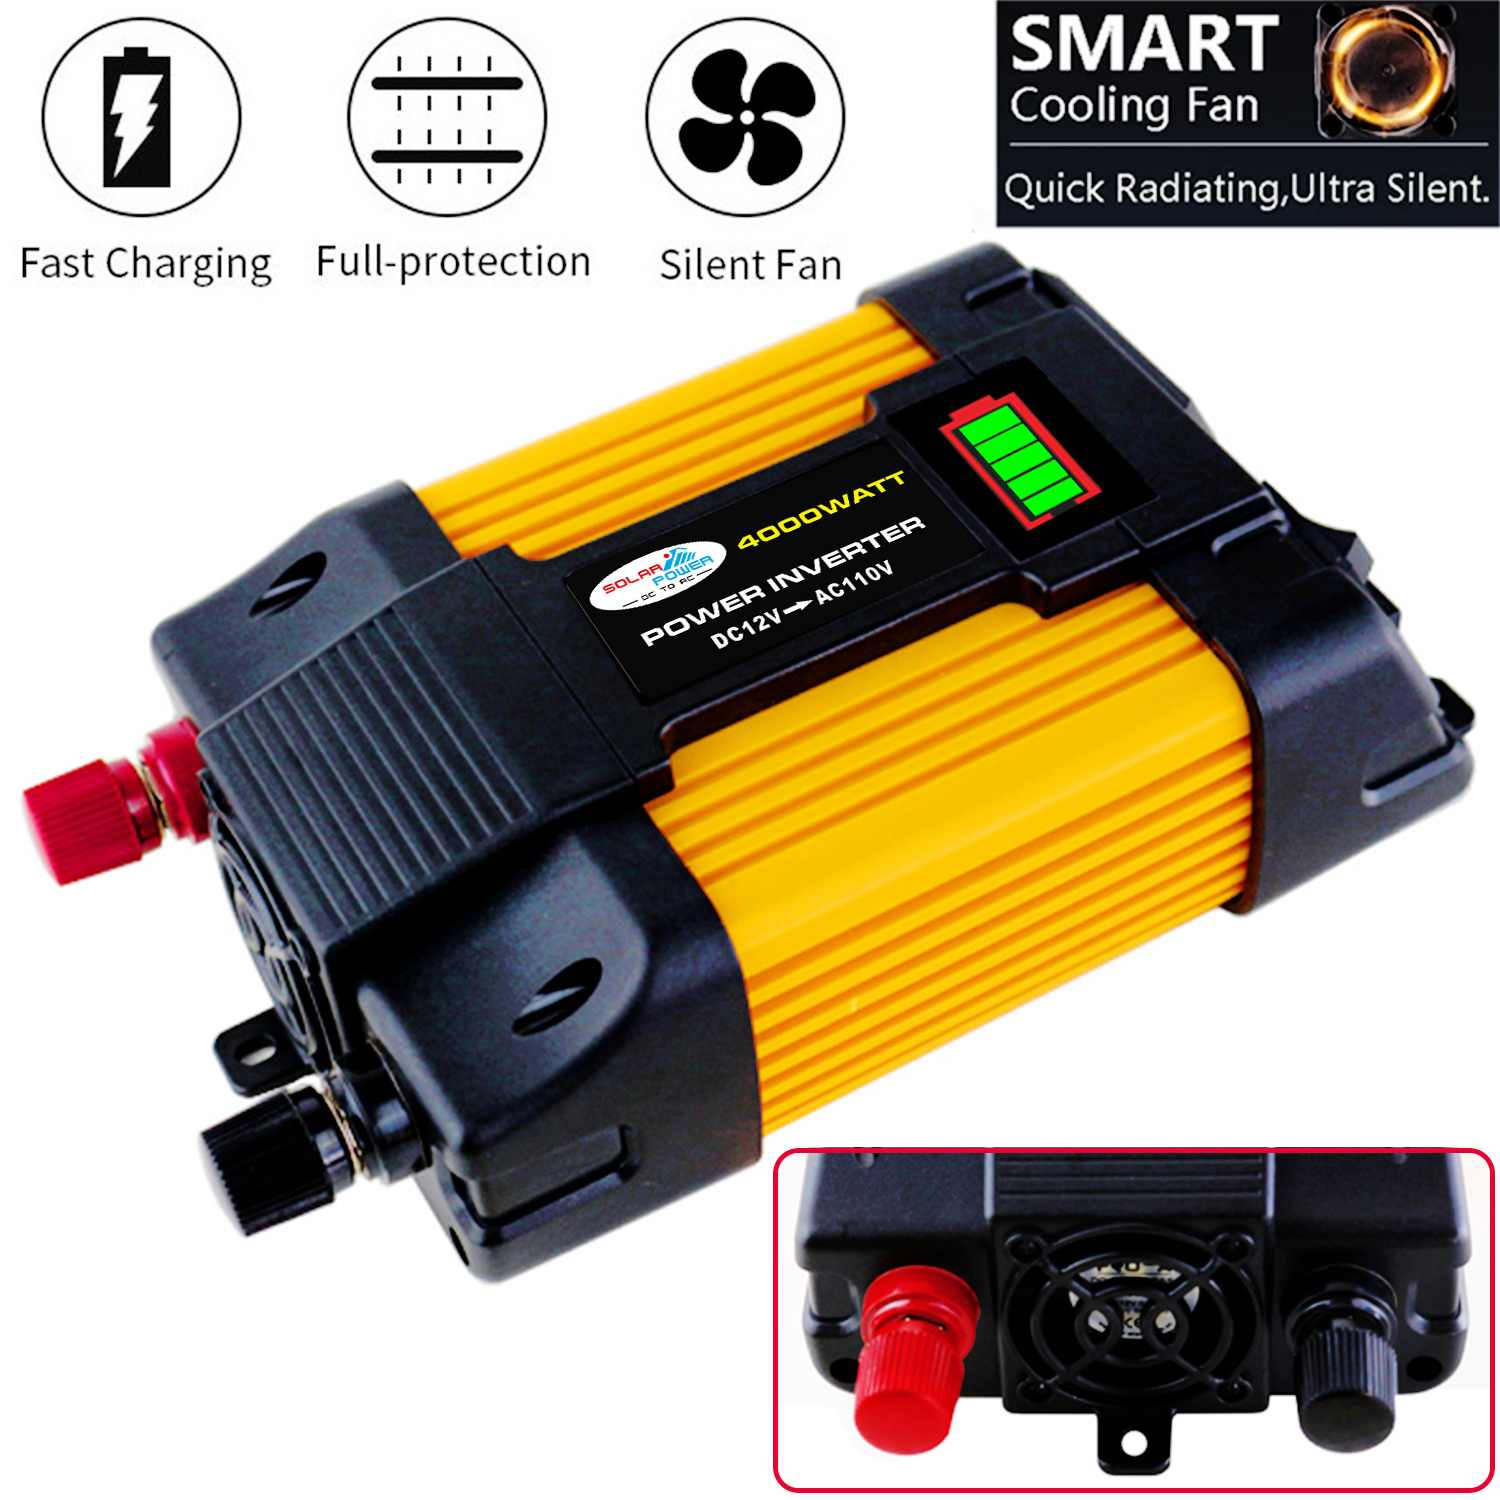 Portable <font><b>Inverter</b></font> <font><b>12V</b></font> TO 110/220V <font><b>1000W</b></font> Auto Modified Sine Wave Voltage Transformer Power <font><b>Inverter</b></font> Converter Car Charge 2 USB image